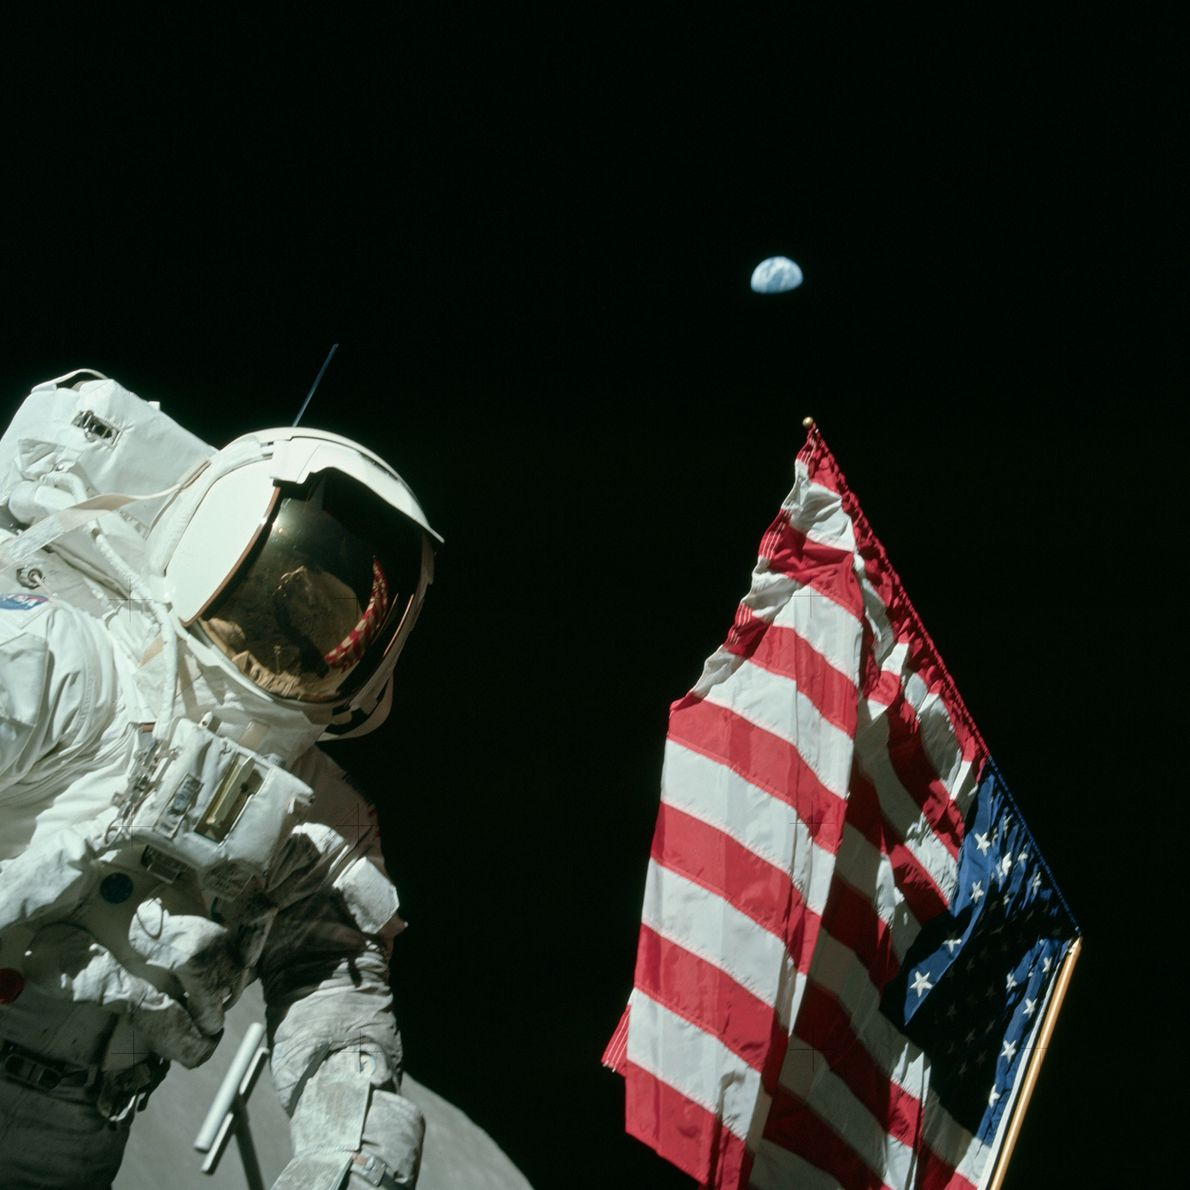 Apollo 17 astronaut Harrison Schmitt, the only Apollo astronaut who was also a professional scientist, stands ...